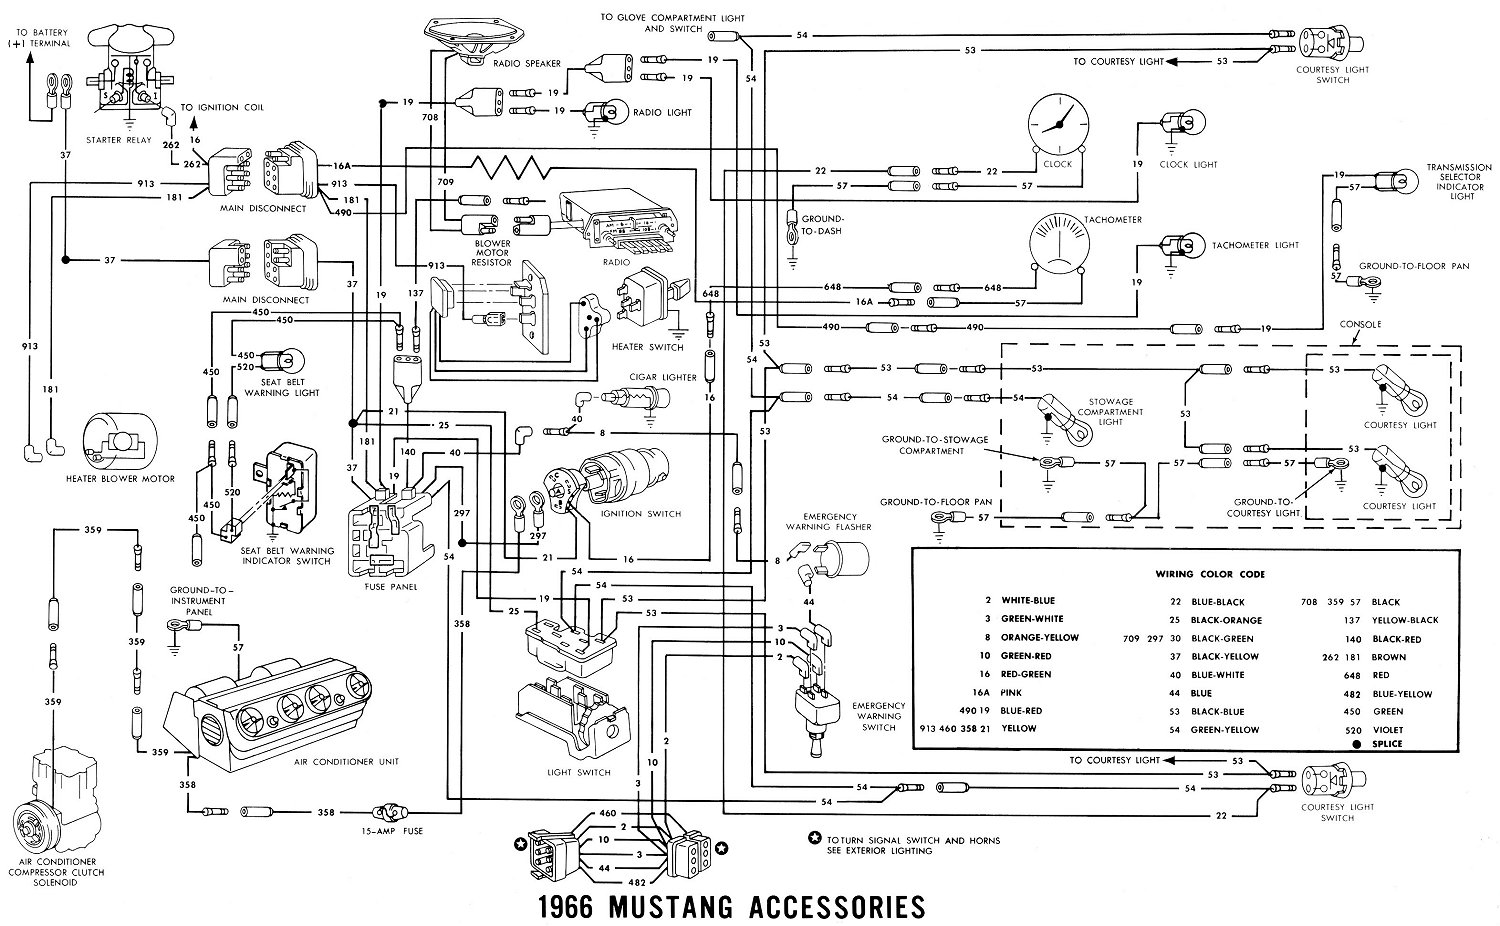 hight resolution of mustang ammeter wiring diagram on 1968 mustang dash wiring diagram 1970 mustang solenoid wiring diagram 1968 mustang air conditioning wiring diagram